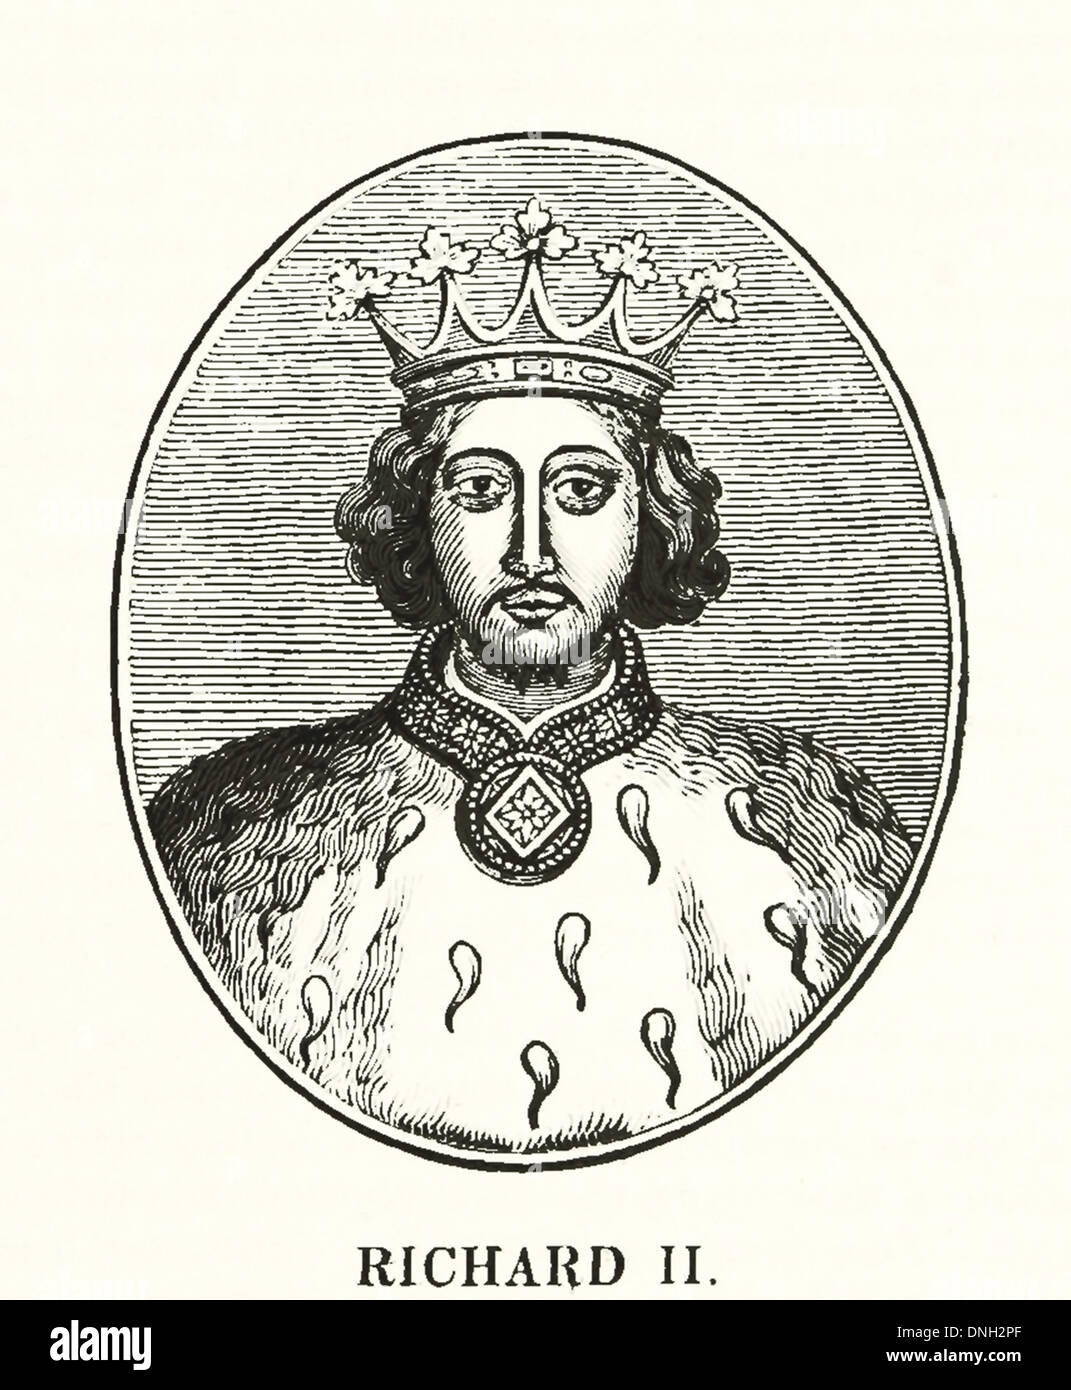 Richard II (6 January 1367 – ca. 14 February 1400) was King of England from 1377 until he was deposed in 1399 - Stock Image